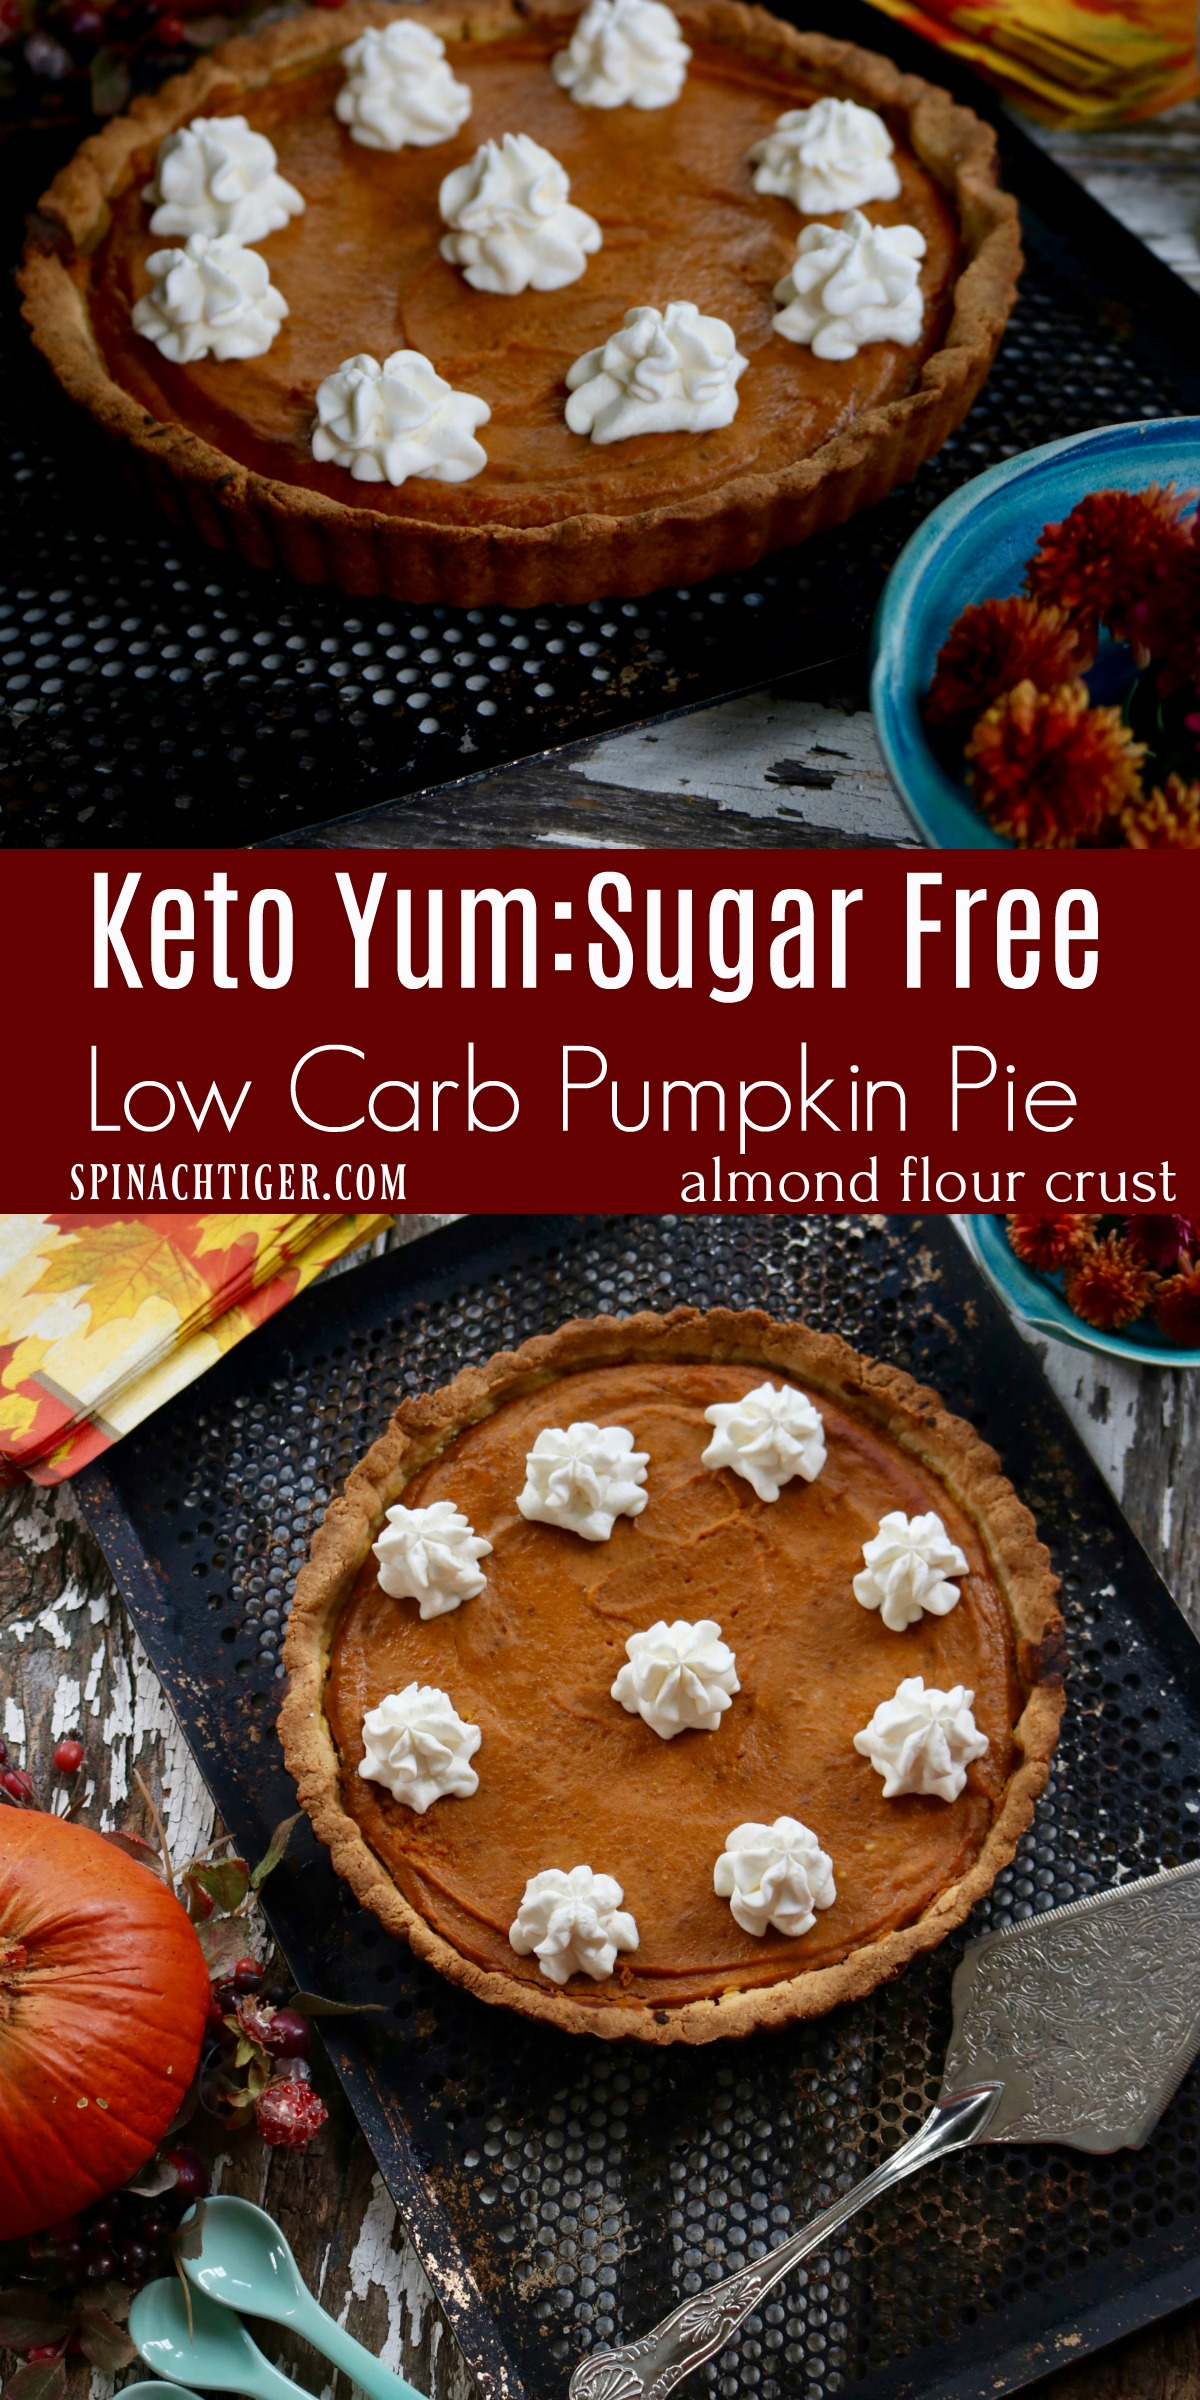 Low Carb Pumpkin Pie from Spinach Tiger